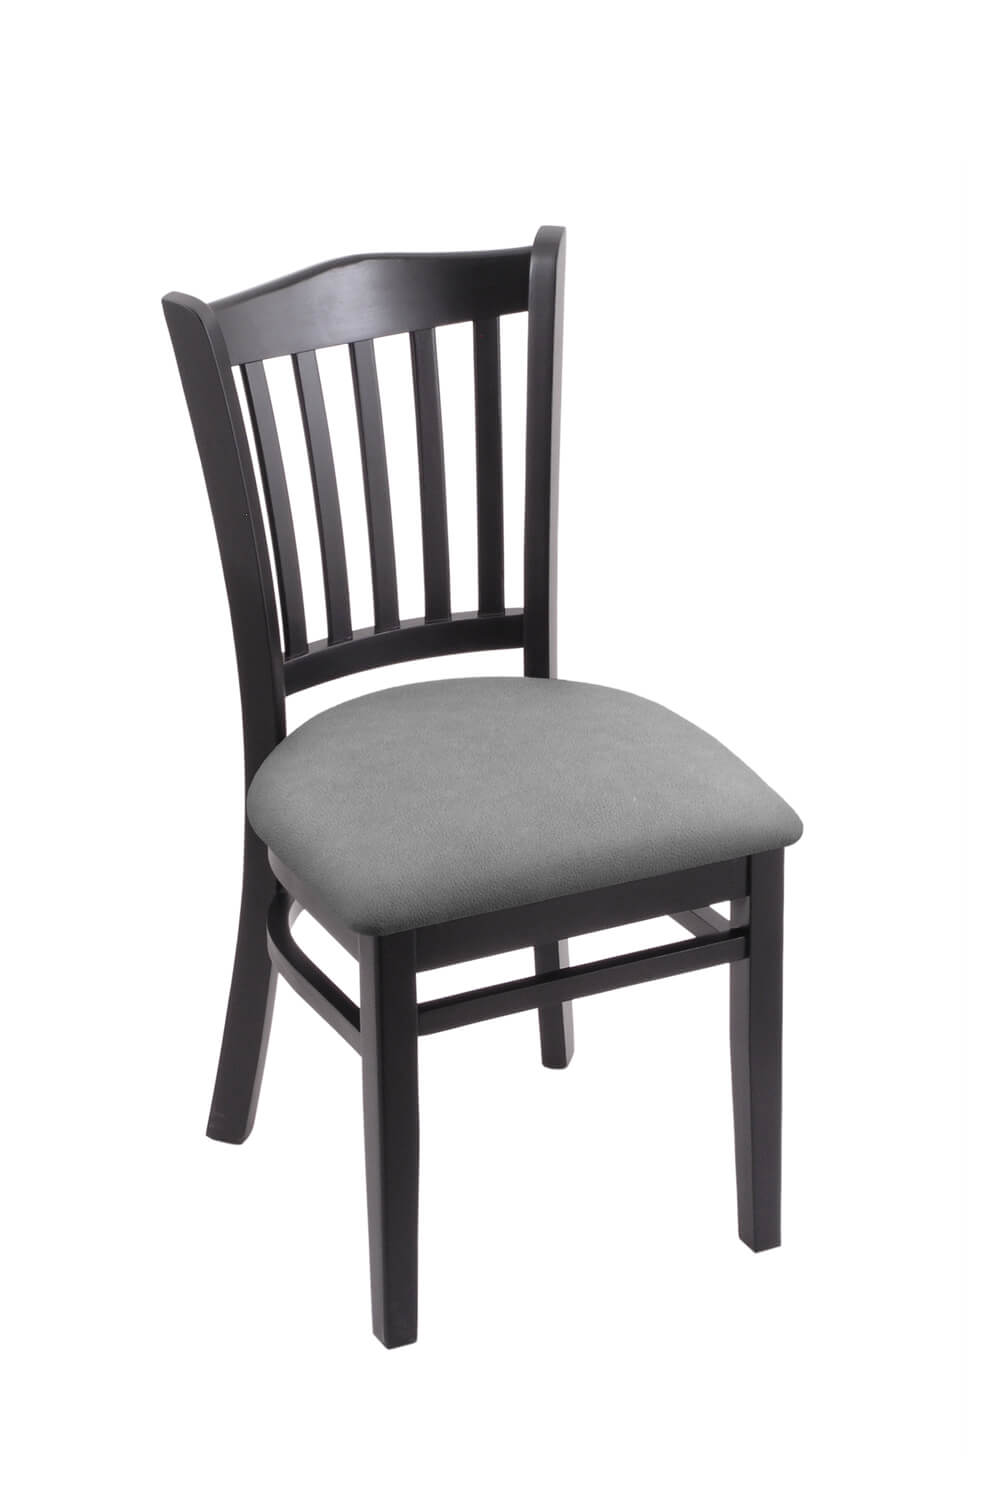 3120 Hampton Series Wood Dining Chair with Back and Seat Cushion